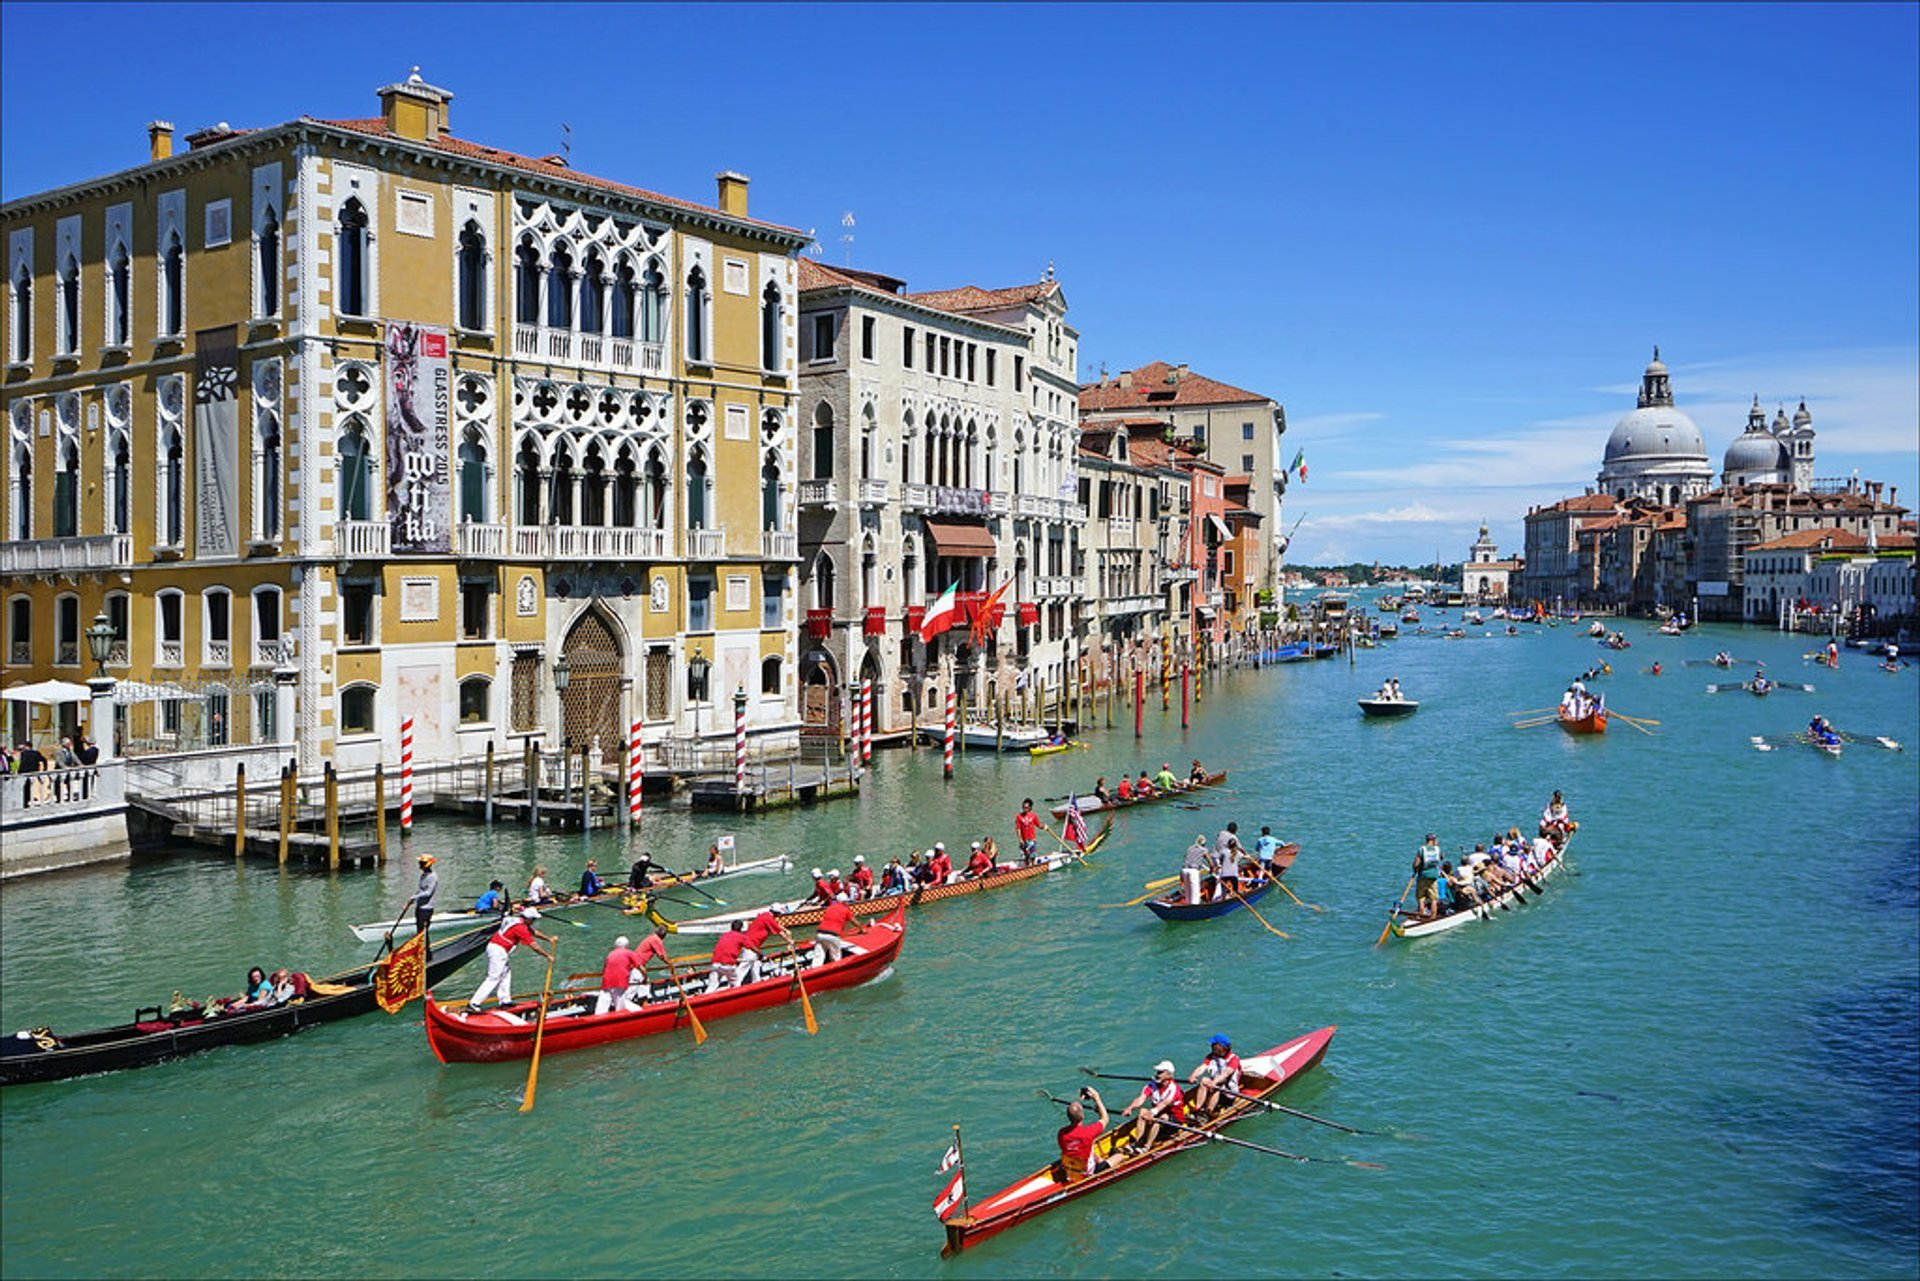 The Vogalonga in Venice 2020 - Best Time